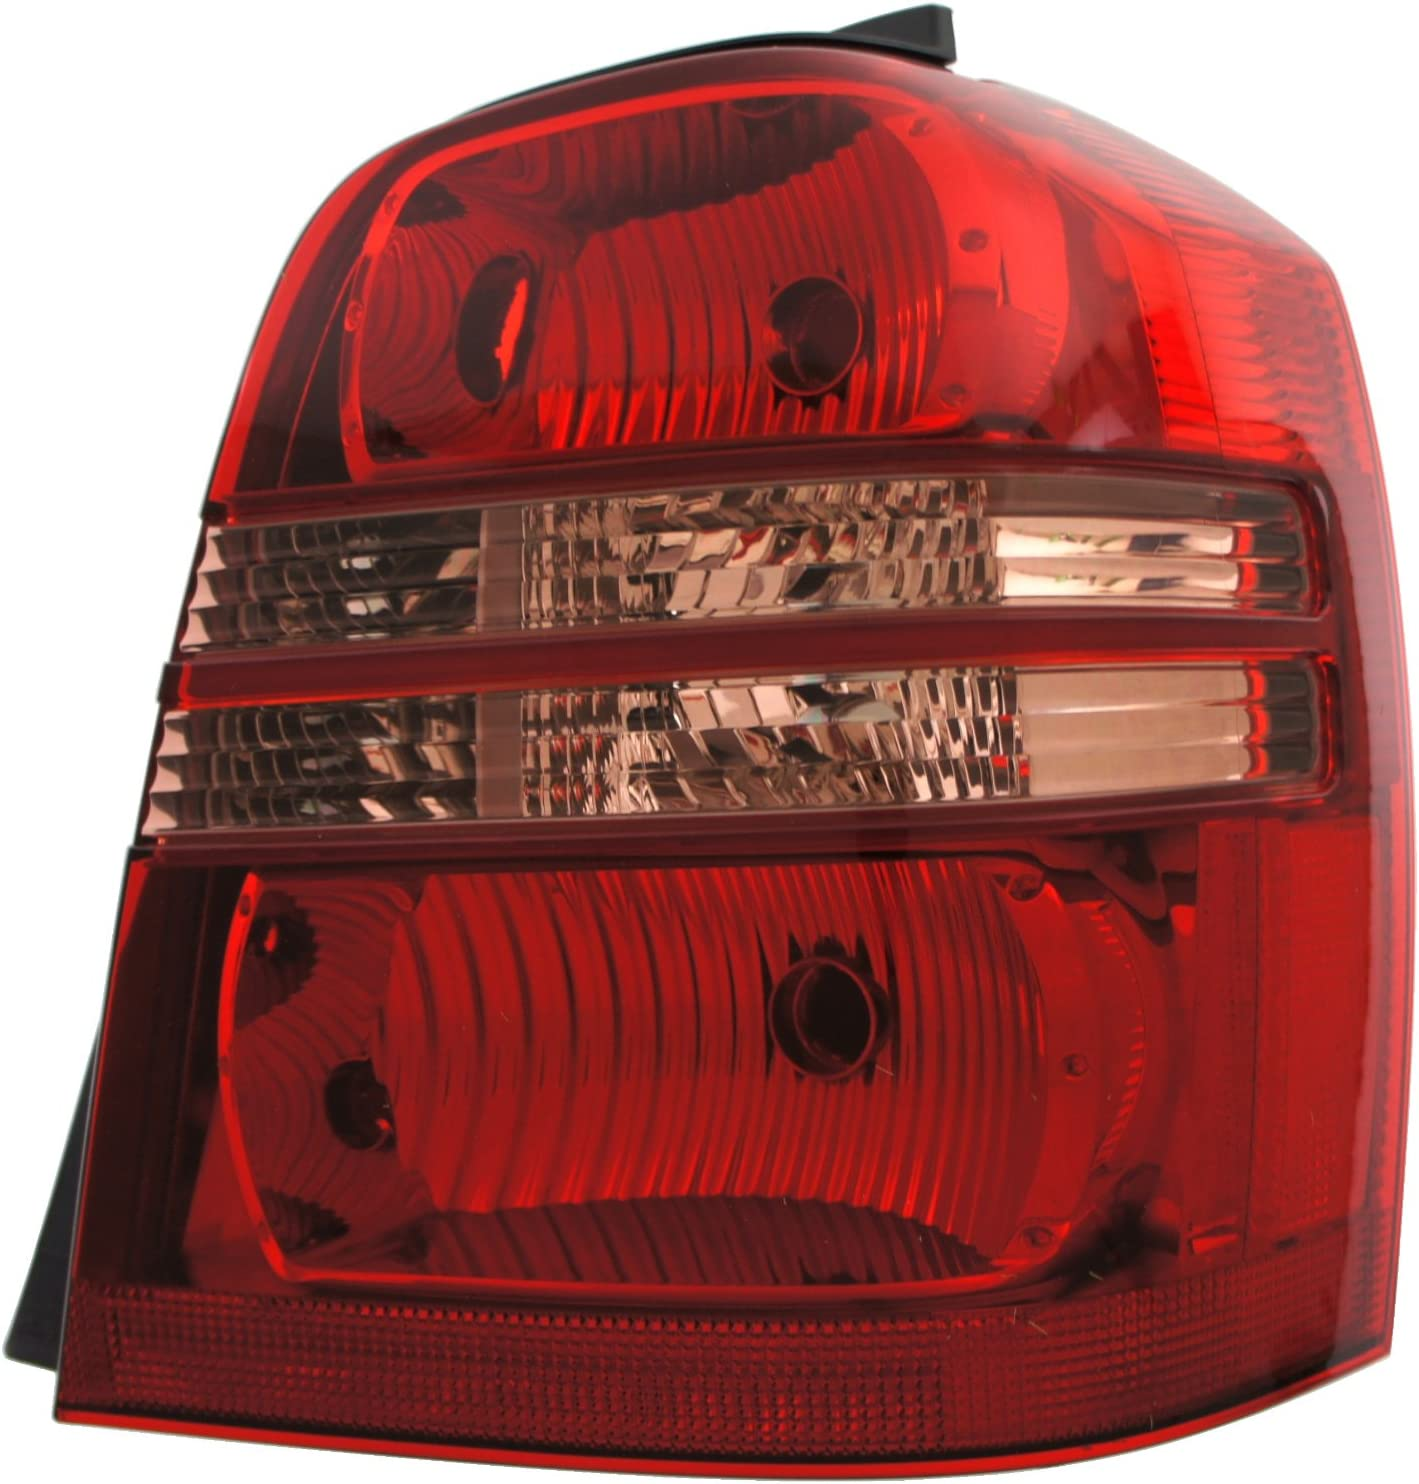 Genuine Toyota Parts 81551-48050 Passenger Long Beach Mall Direct sale of manufacturer H Side Lens Taillight